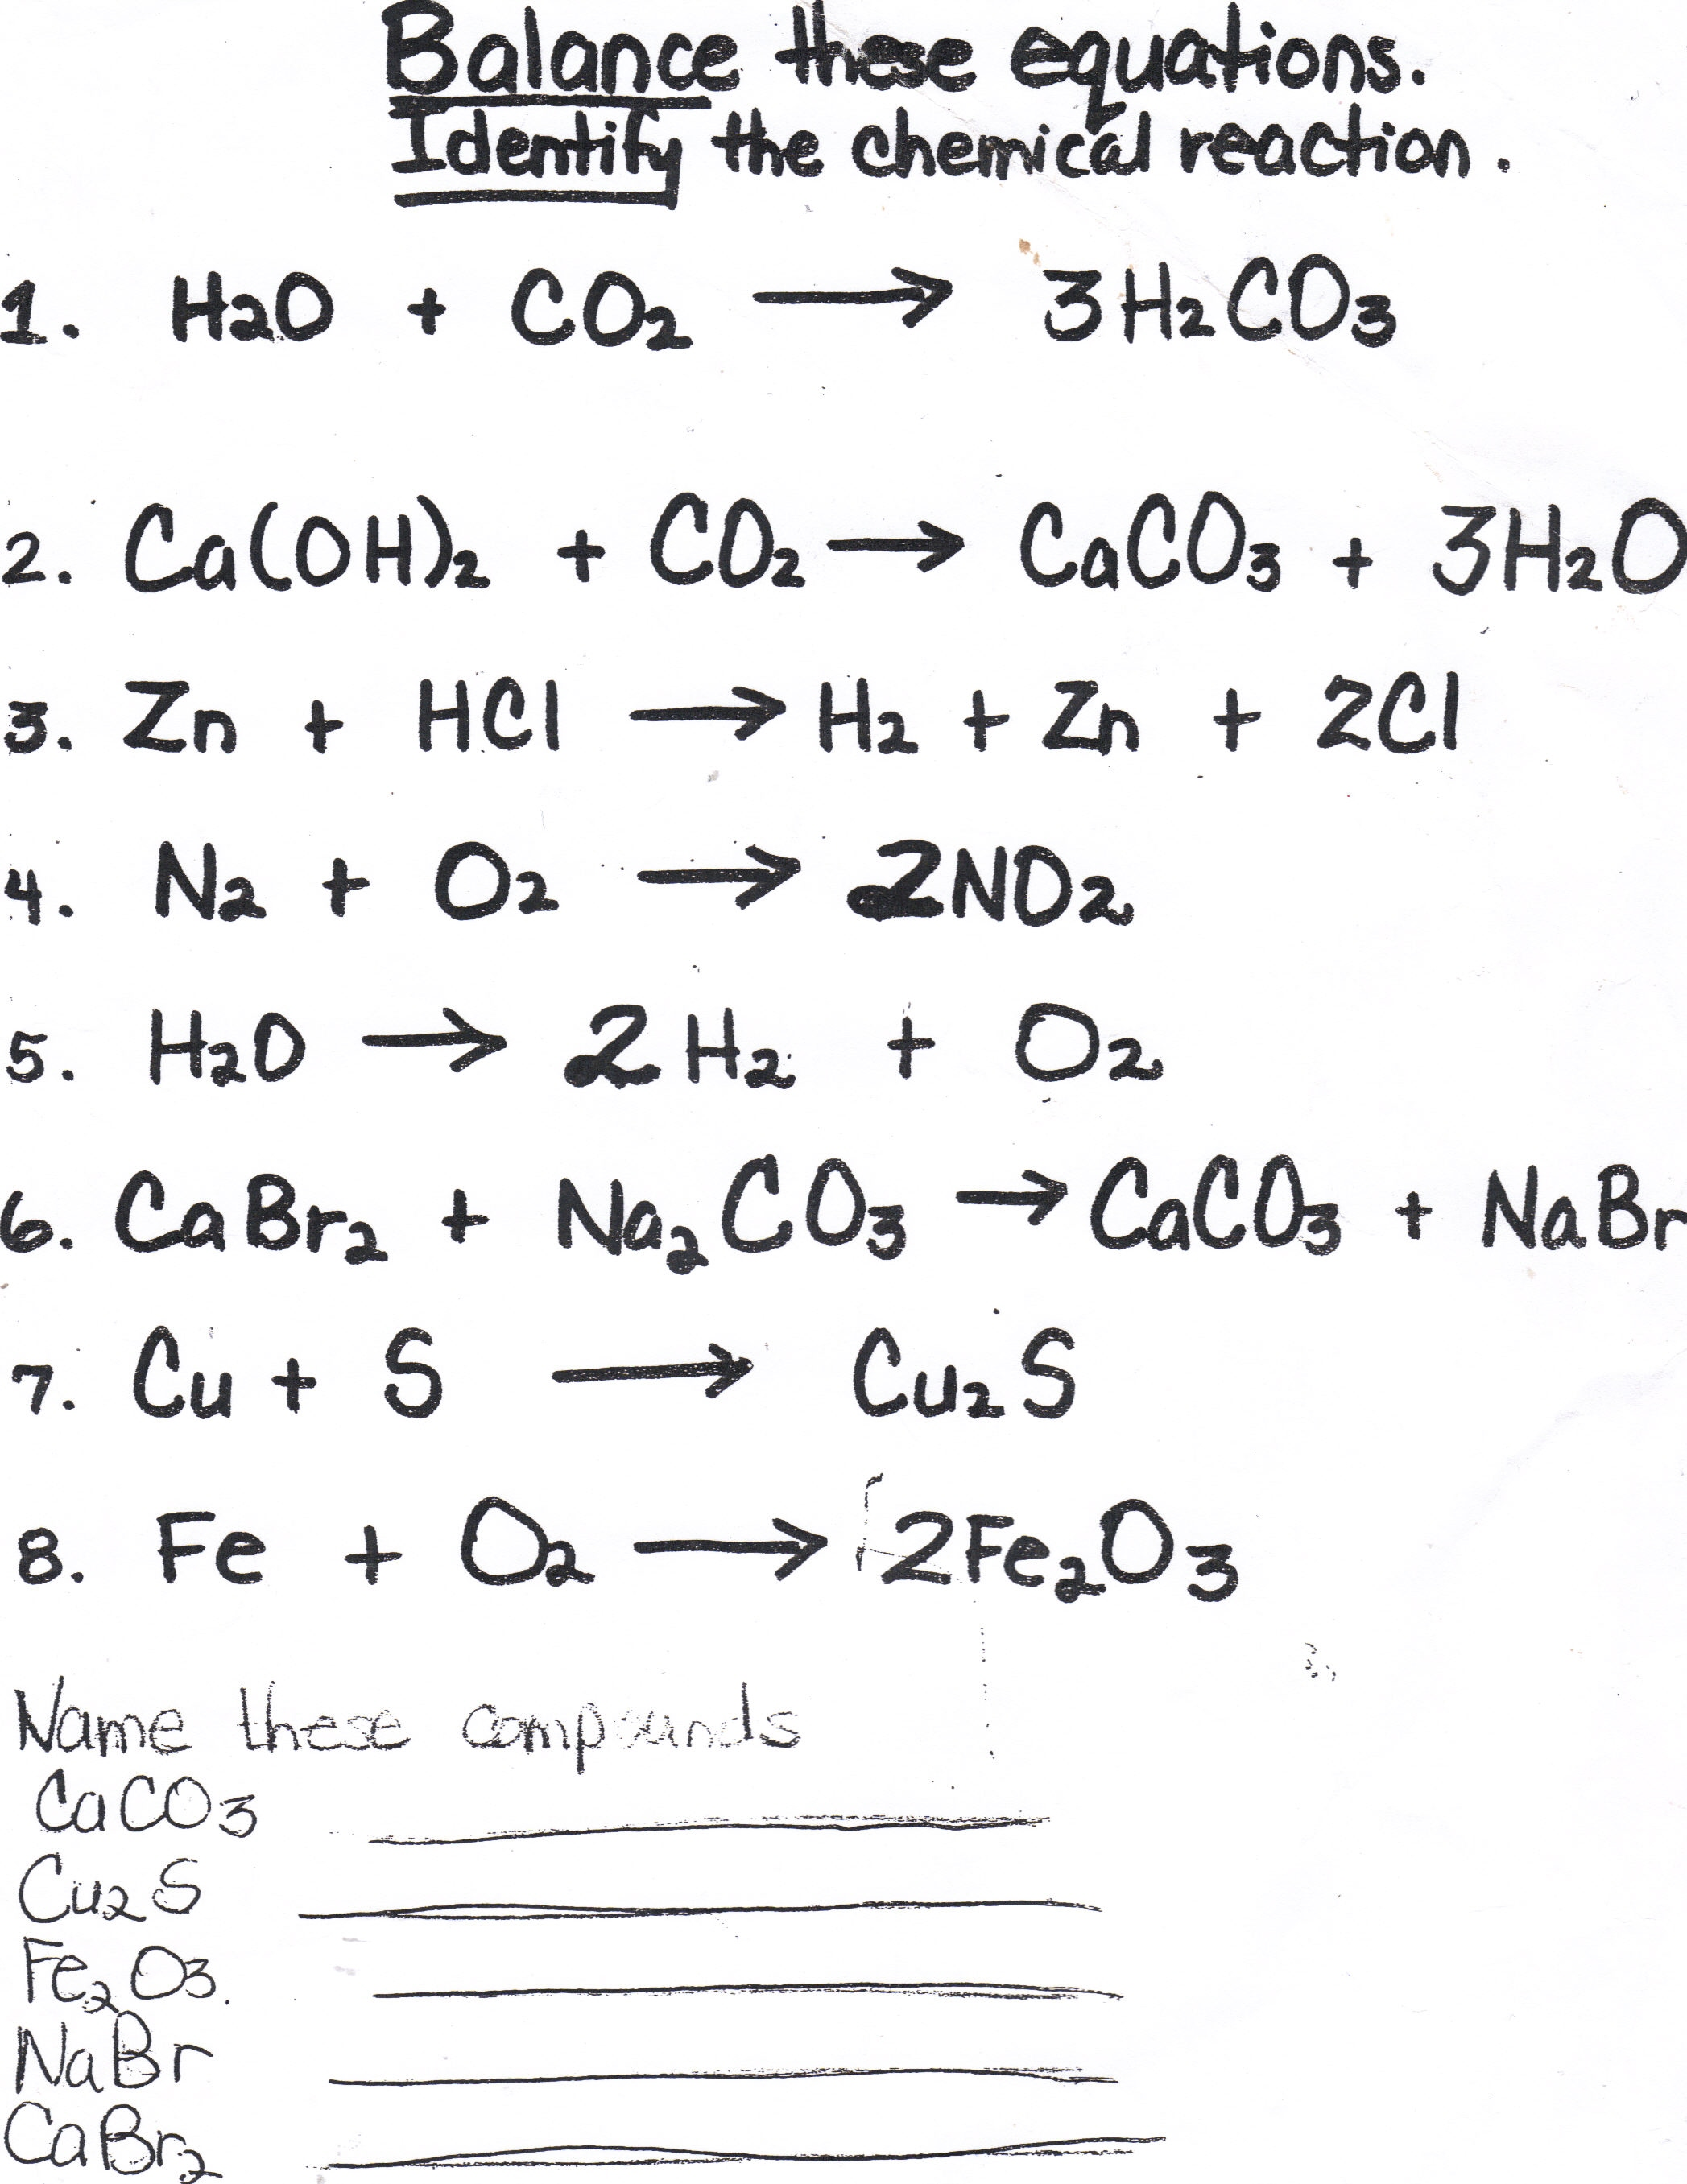 Ms White S Science Blog Balancing Chemical Equations Homework